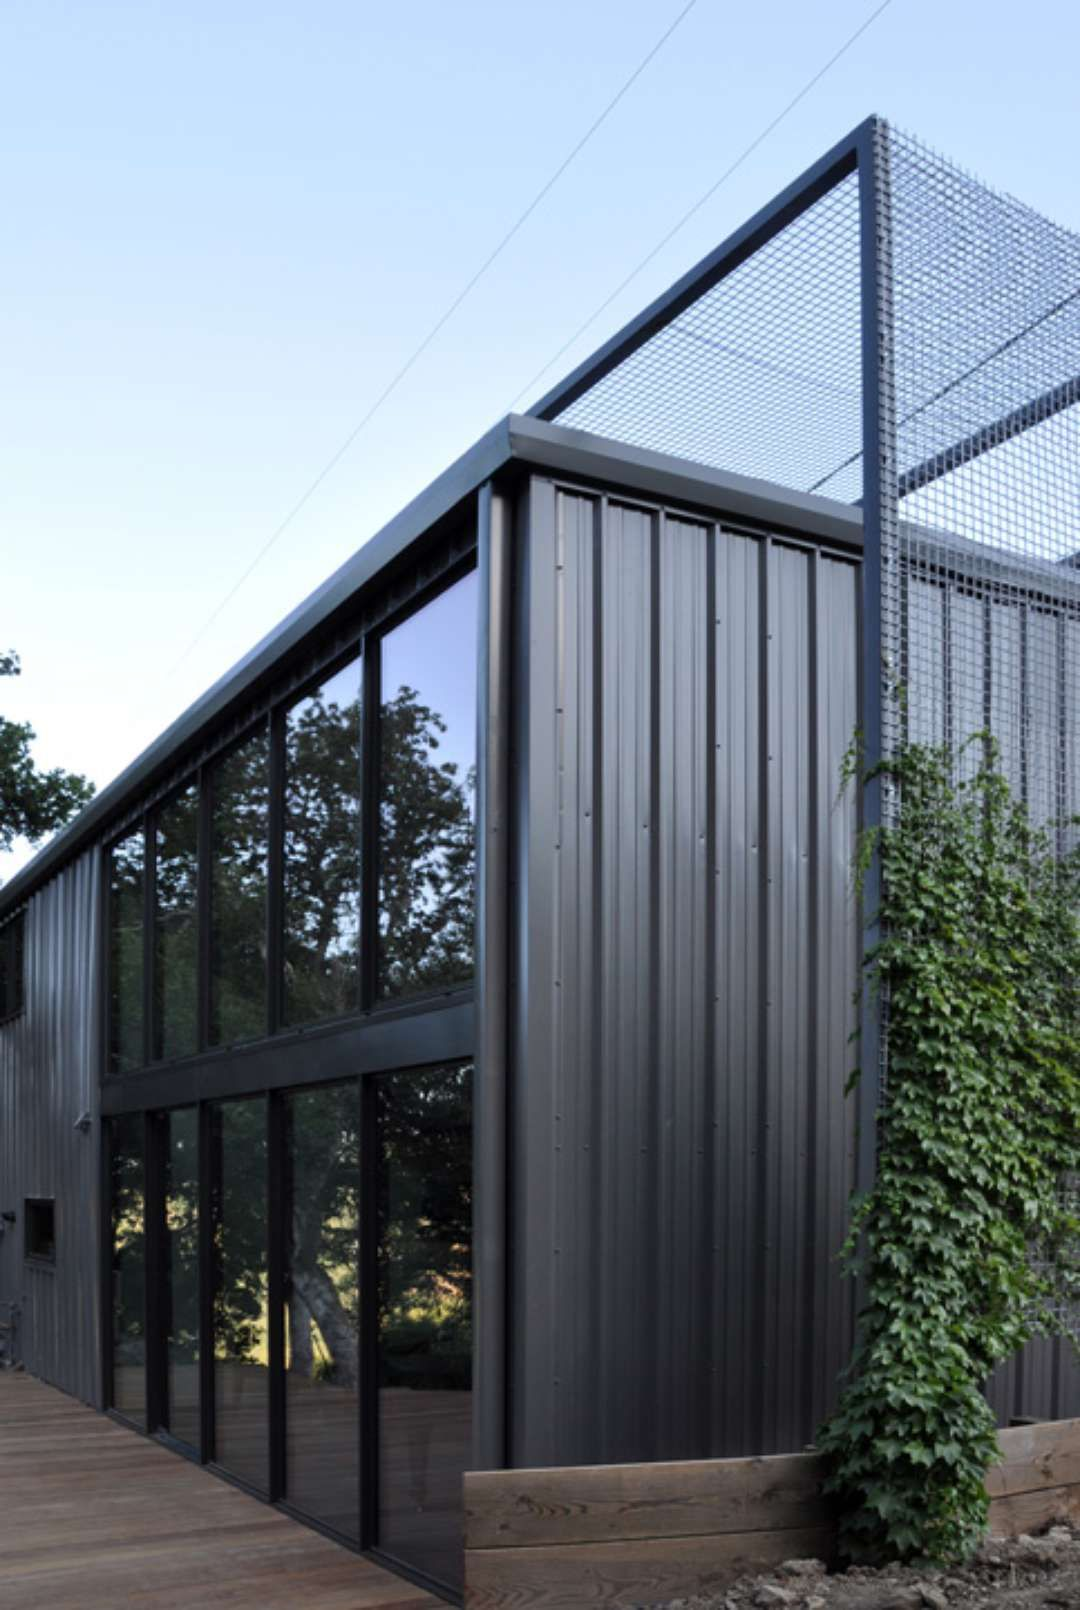 The Shiny Yet Rugged Appeal Of Corrugated Sheet Metal Arquitetura Fotovoltaica Fachada